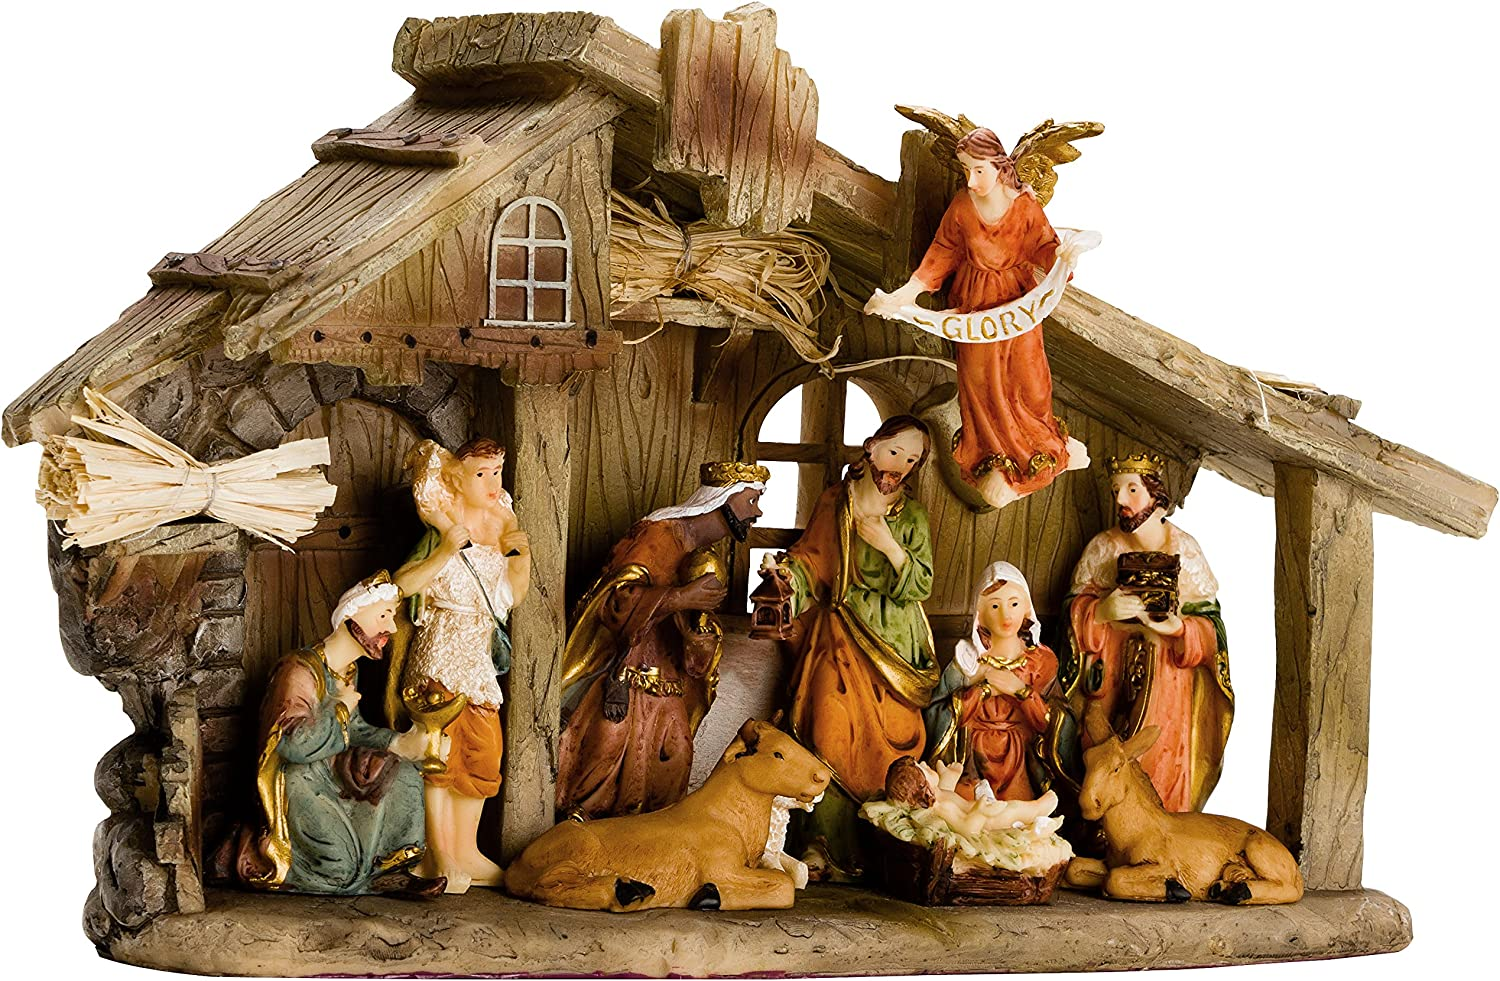 Brubaker Traditional Nativity Set Stable With 11 Resin Figurines Designed In Germany Amazon Co Uk Kitchen Home